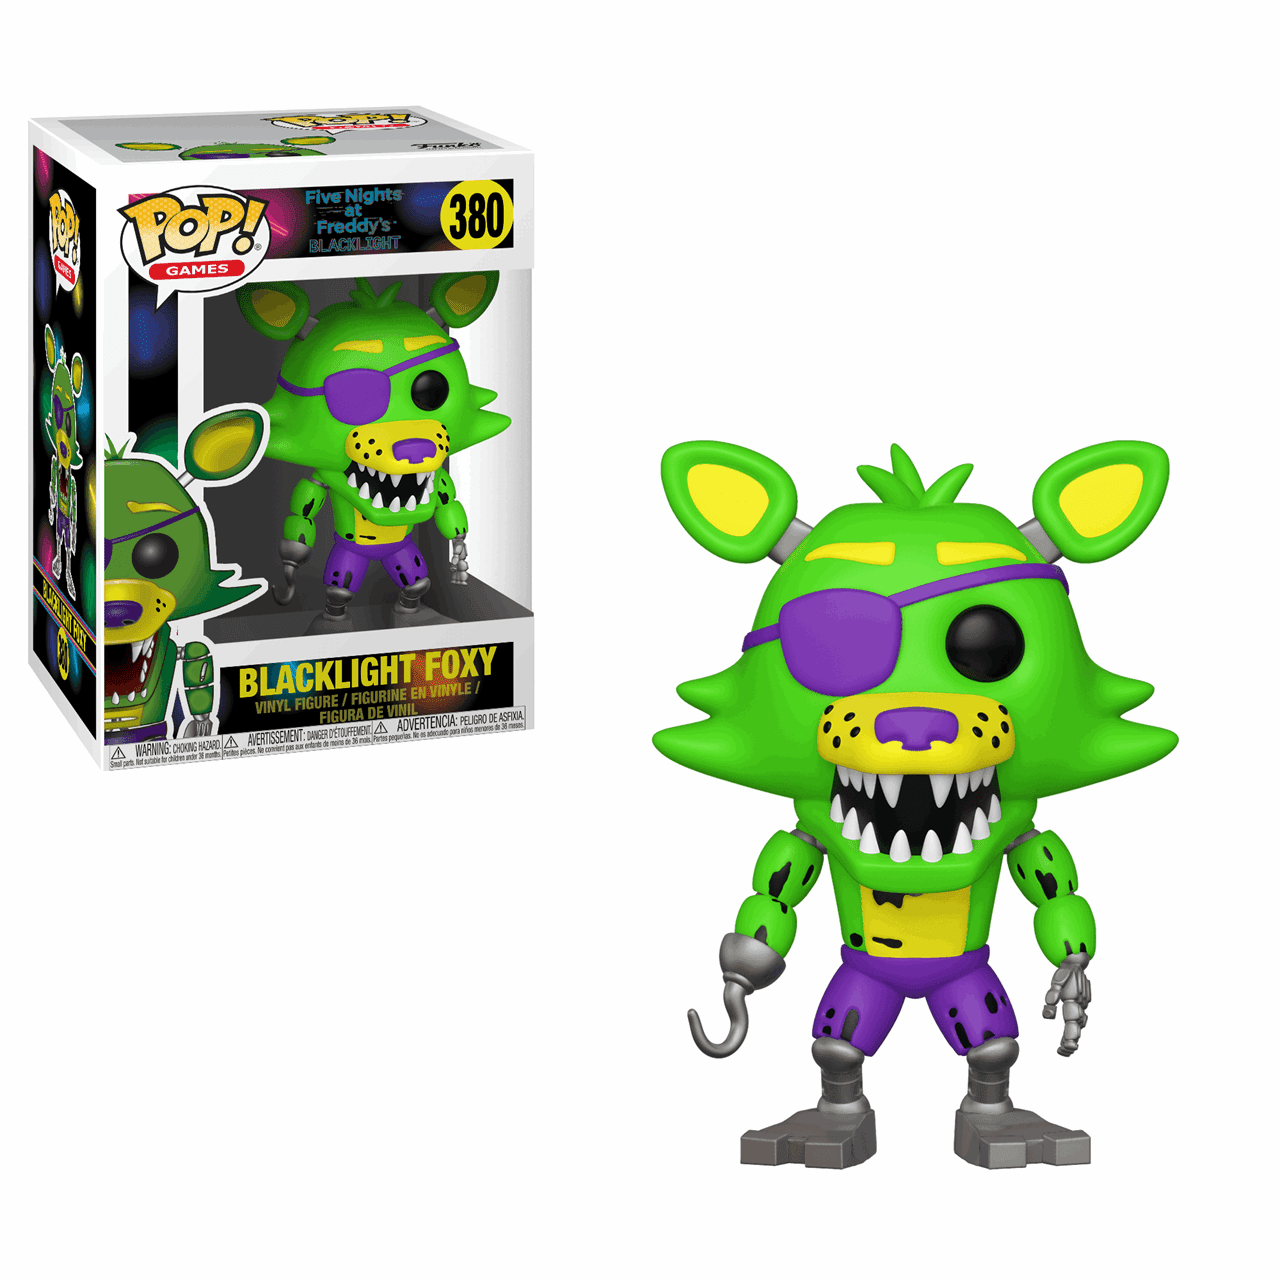 Pop Vinyl: Black Light Foxy (380): Five Nights At Freddy's FNAF - 1